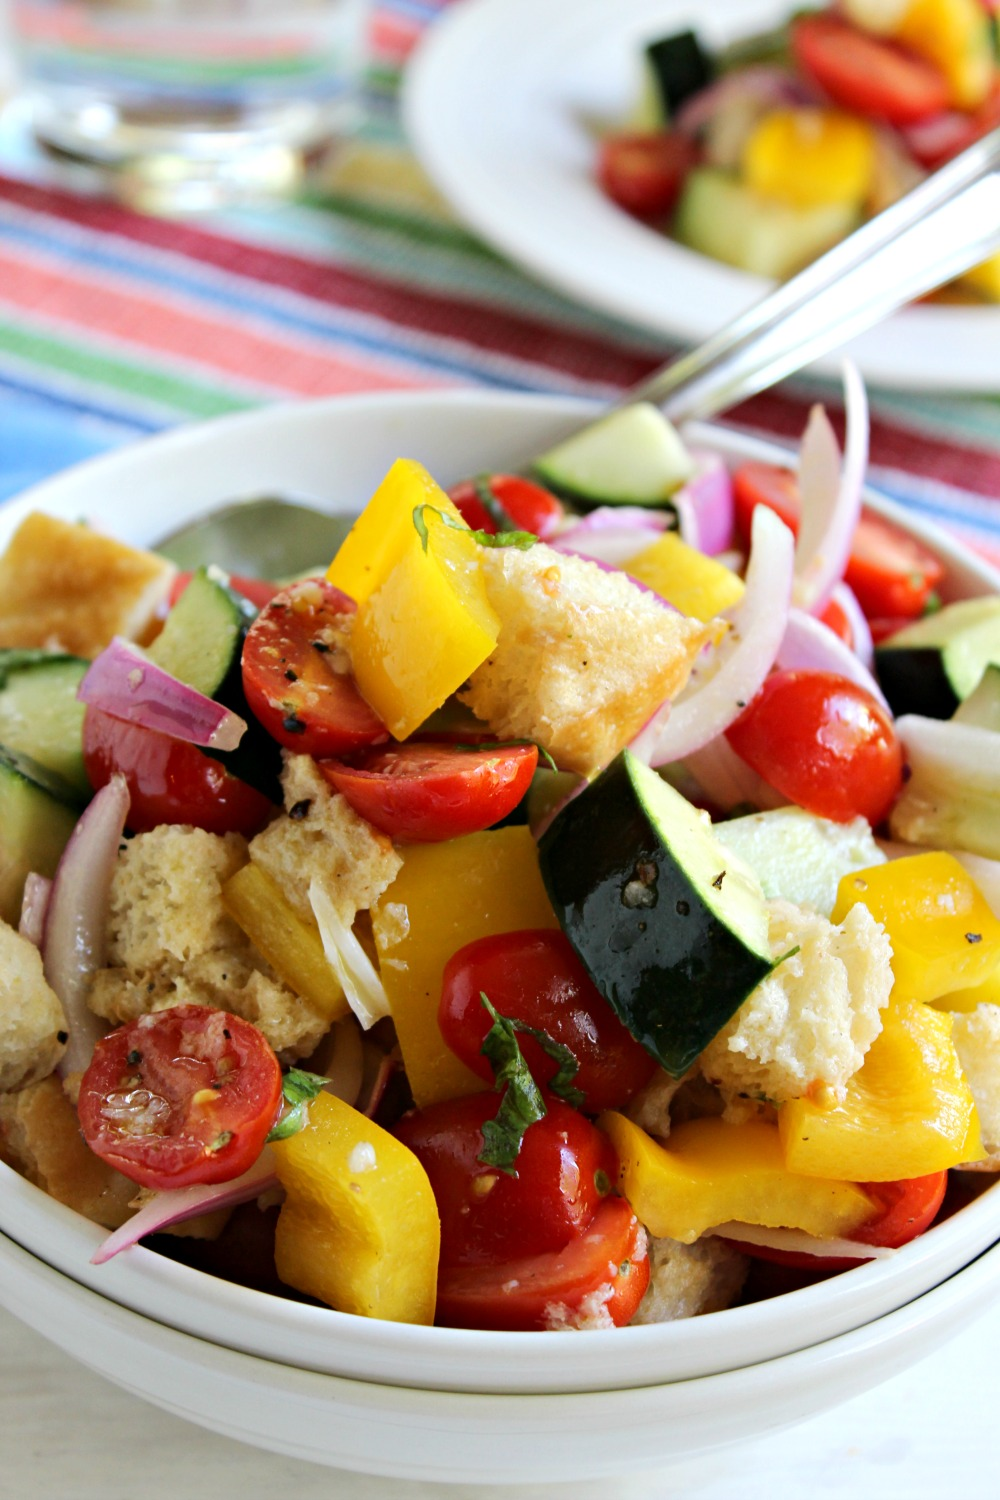 Awesome Panzanella Salad - Dan330